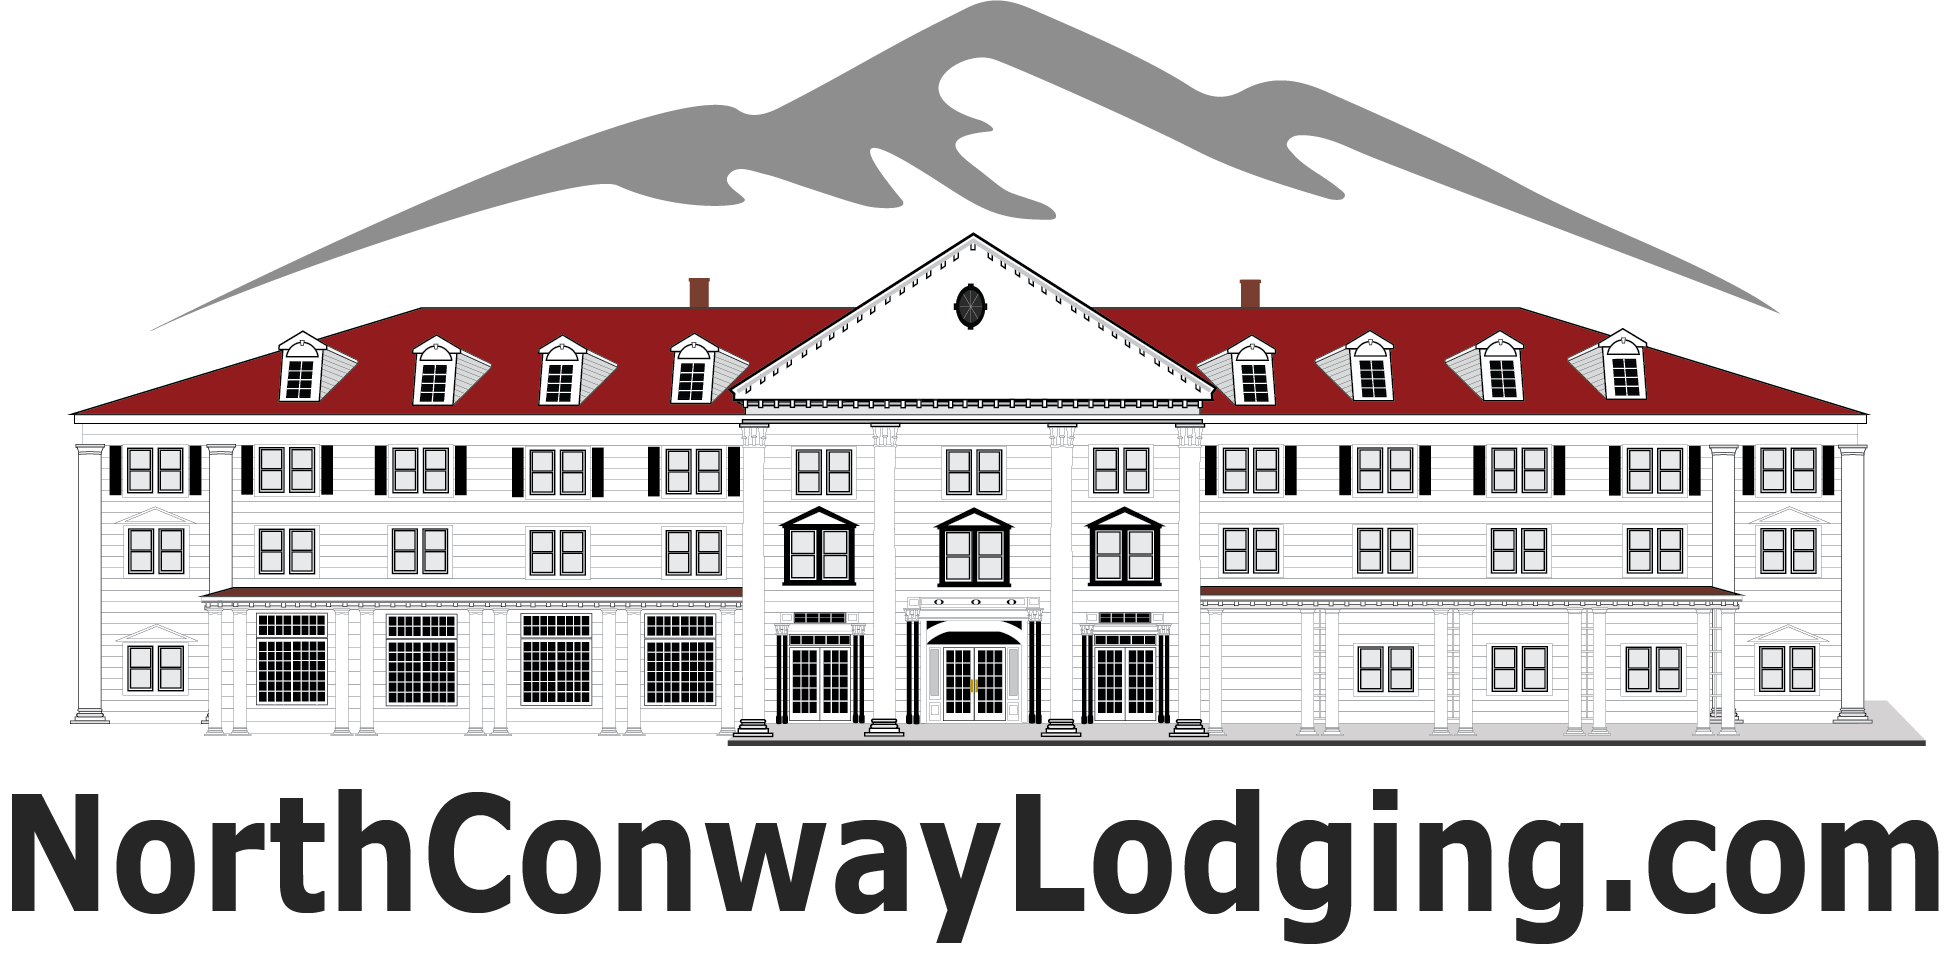 North Conway Lodging